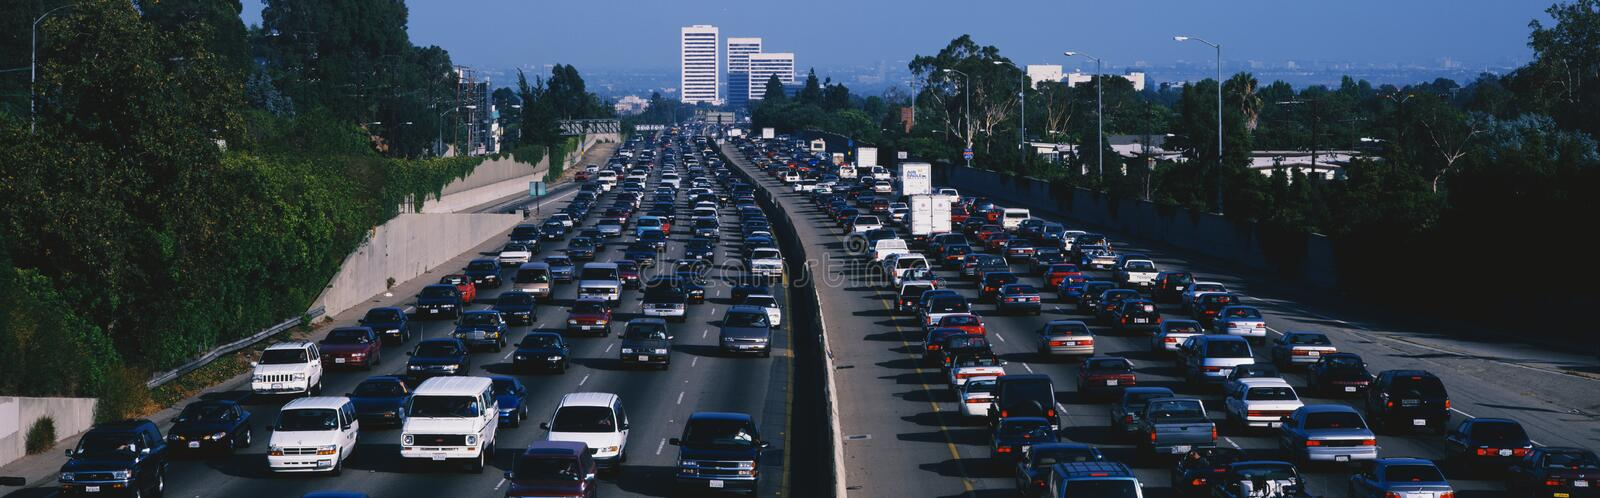 Download Rush hour traffic editorial stock image. Image of crowd - 23159794